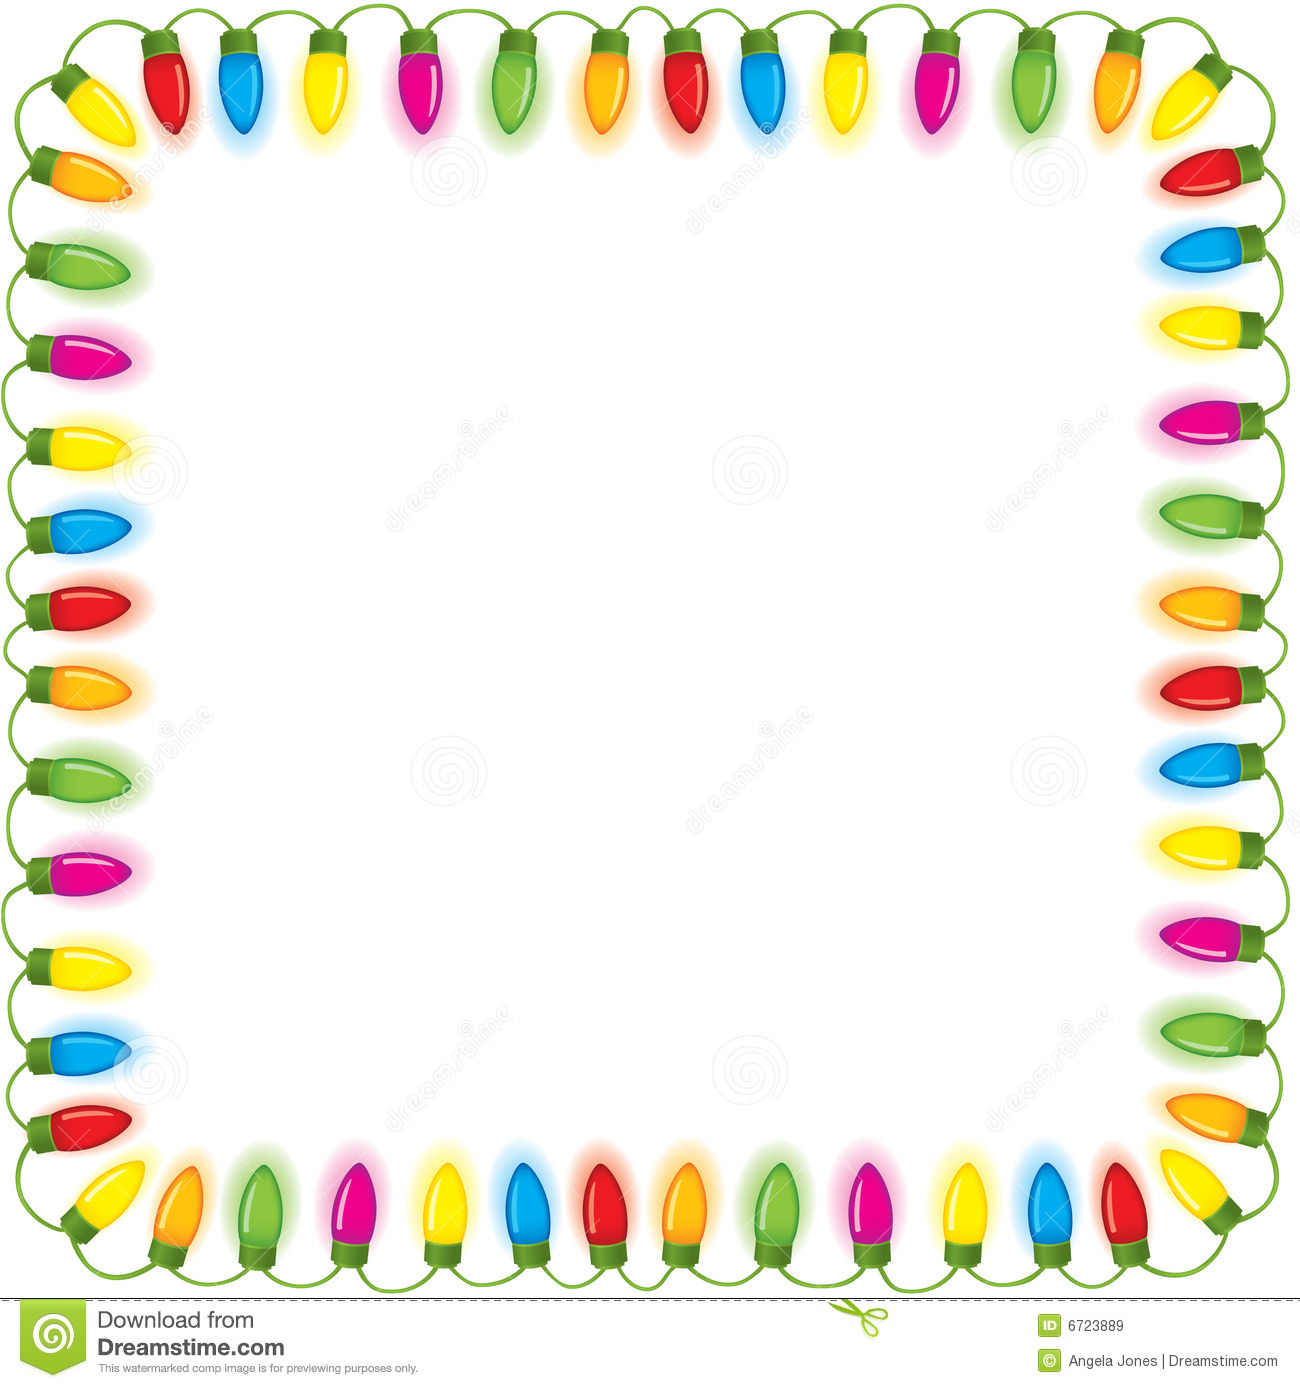 Festive christmas lights - Christmas Lights Border Clip Art